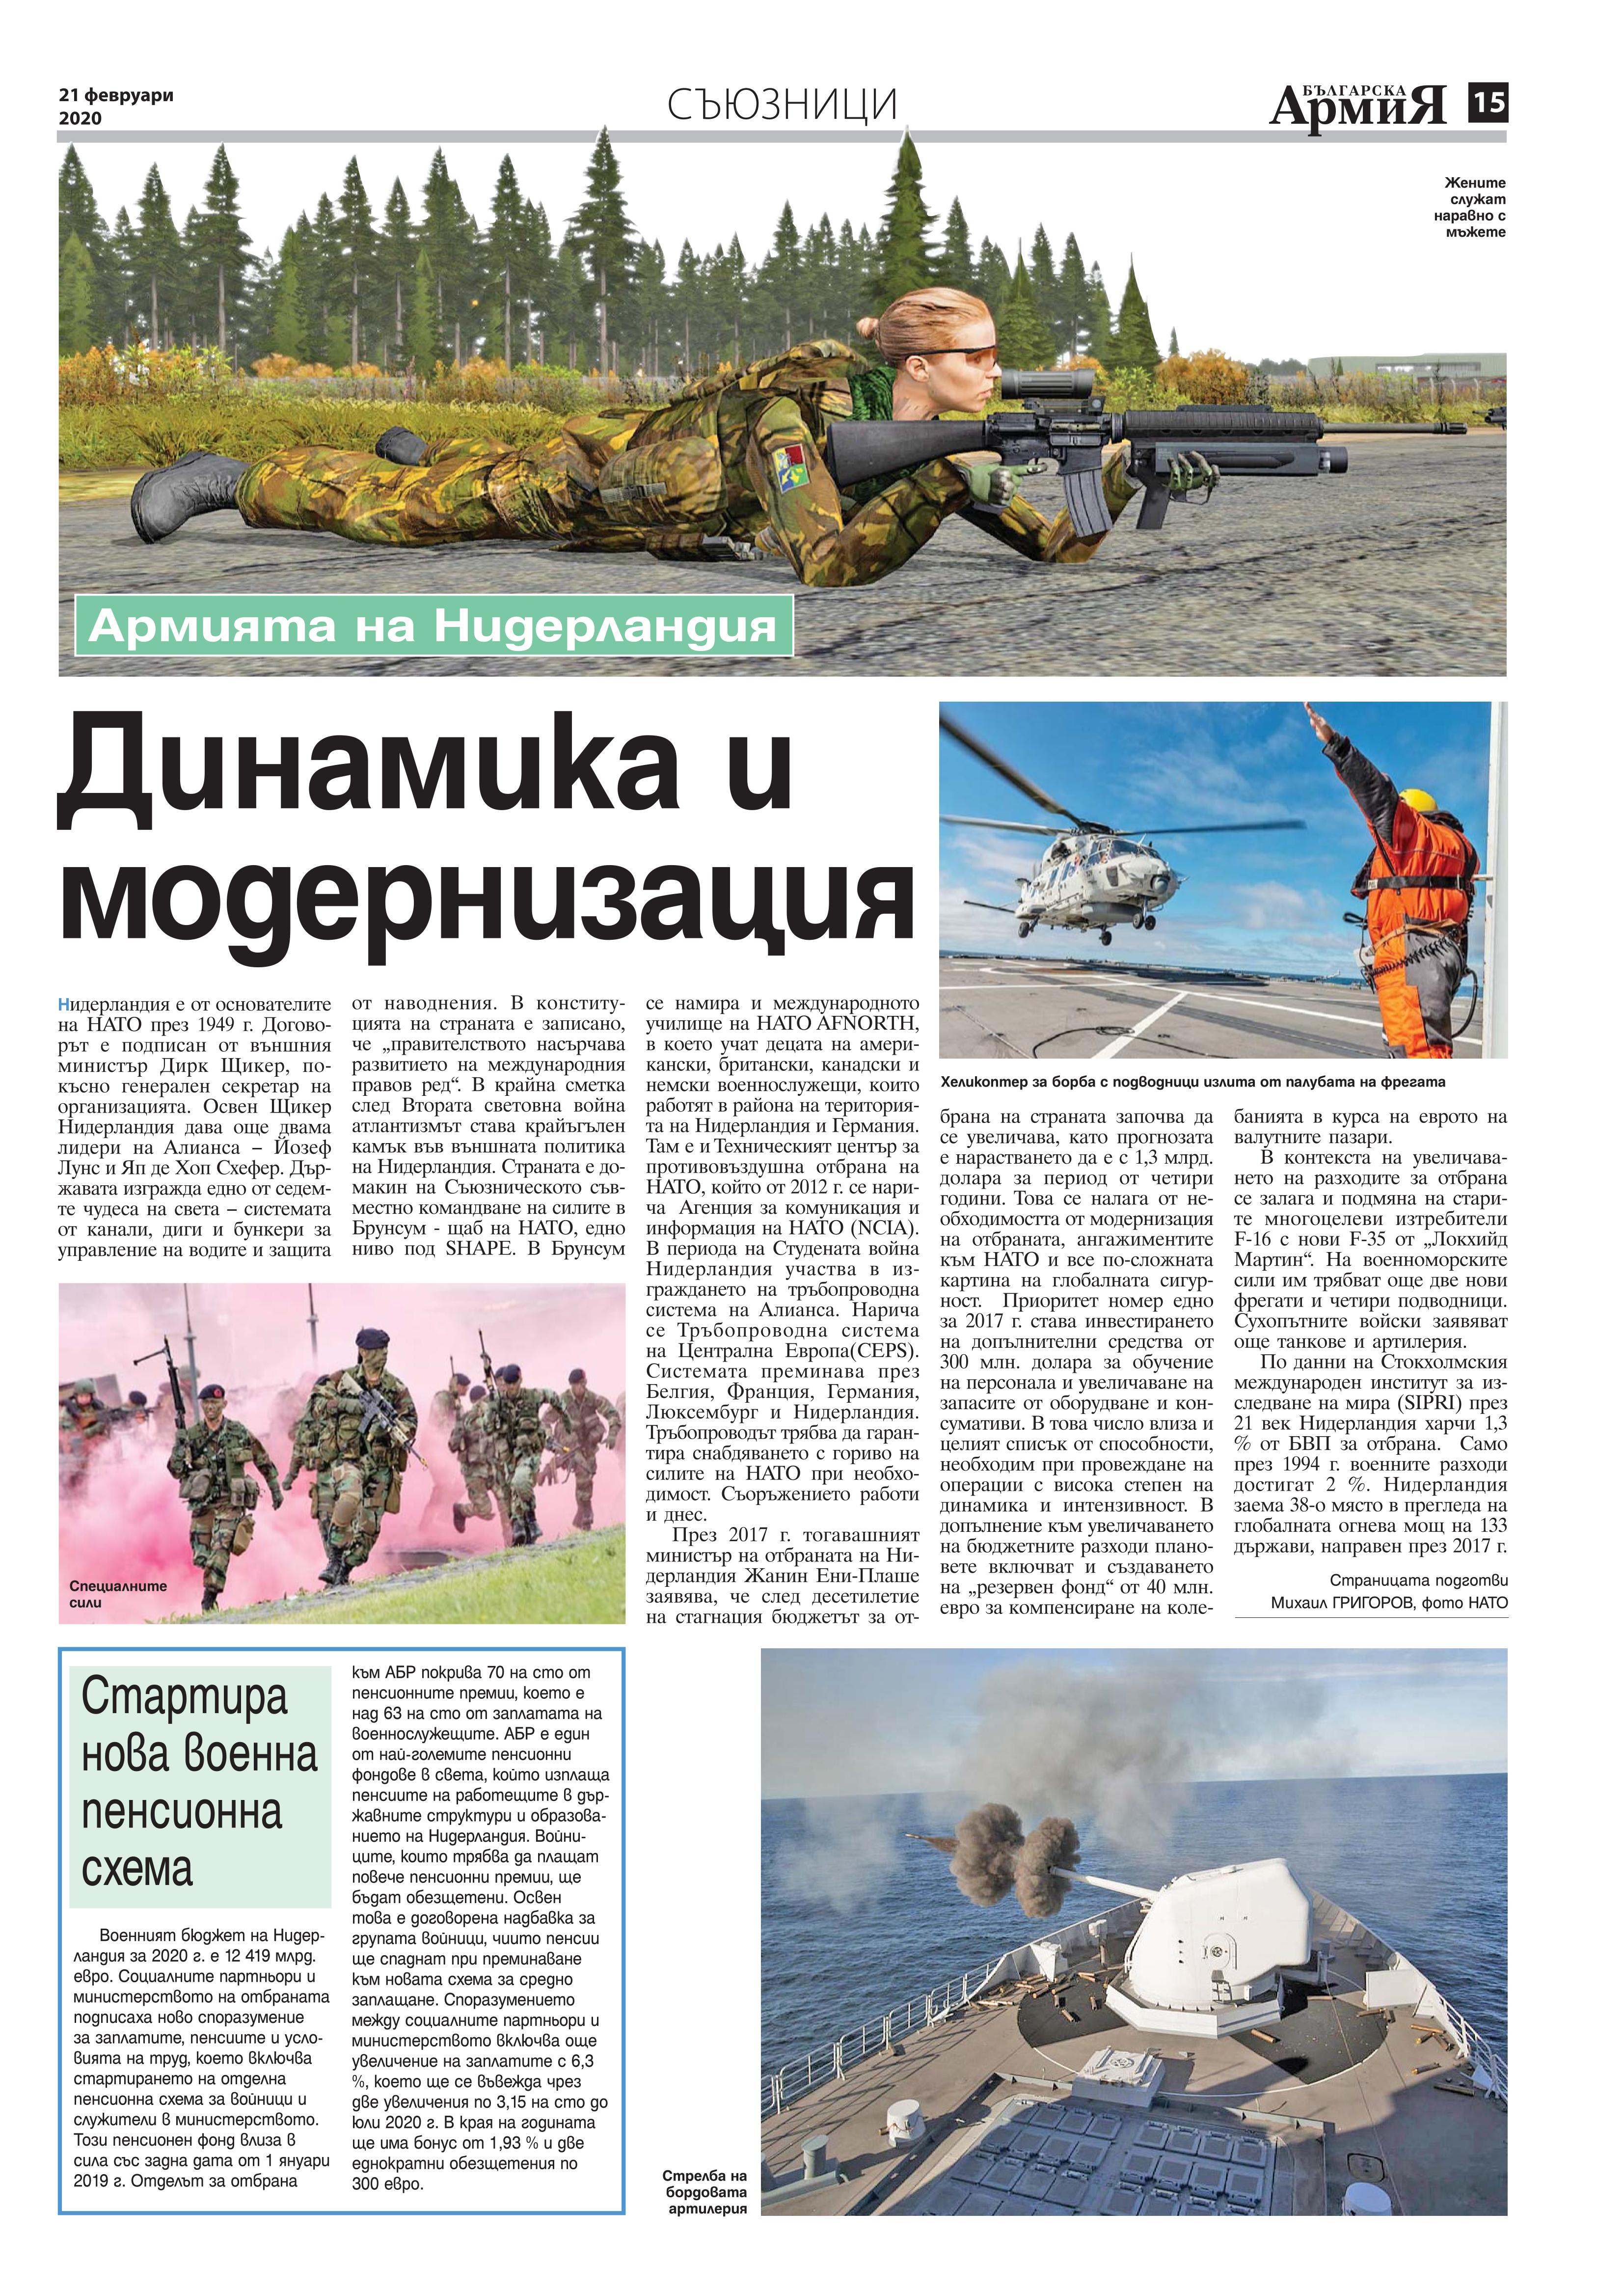 https://www.armymedia.bg/wp-content/uploads/2015/06/15.page1_-127.jpg